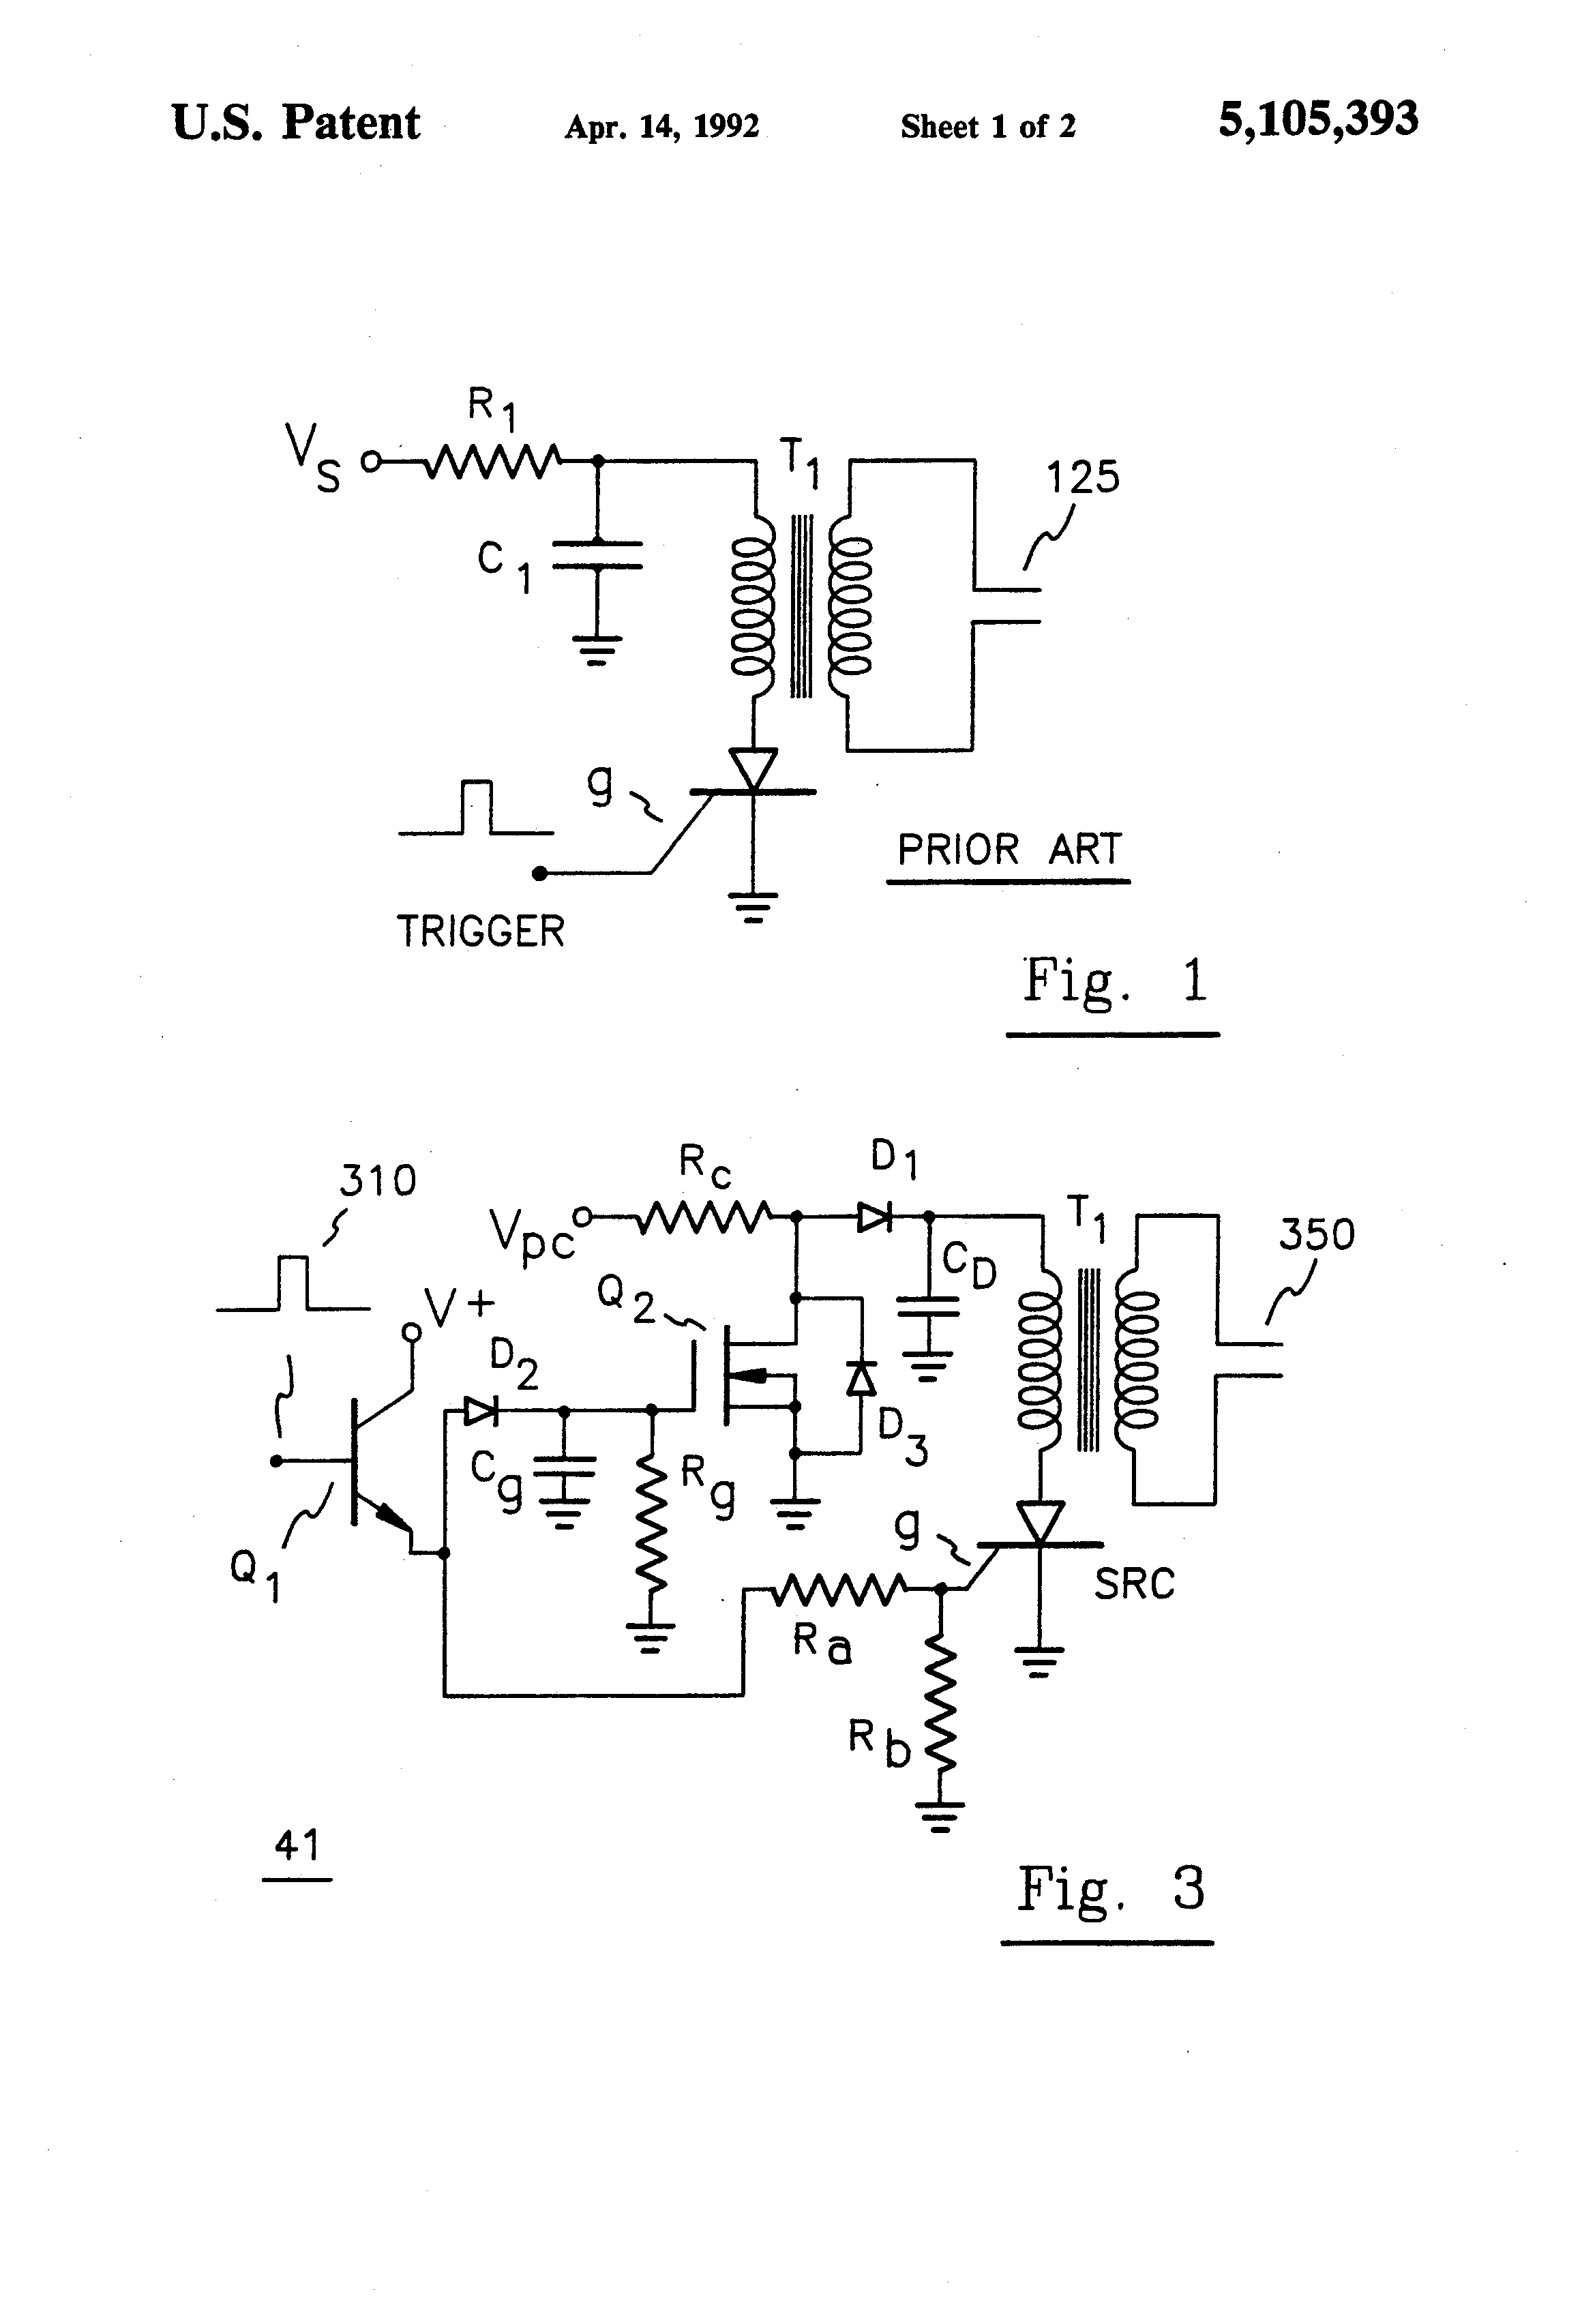 Scr Control Circuit Patent Us5105393 For High Current Discharge Drawing